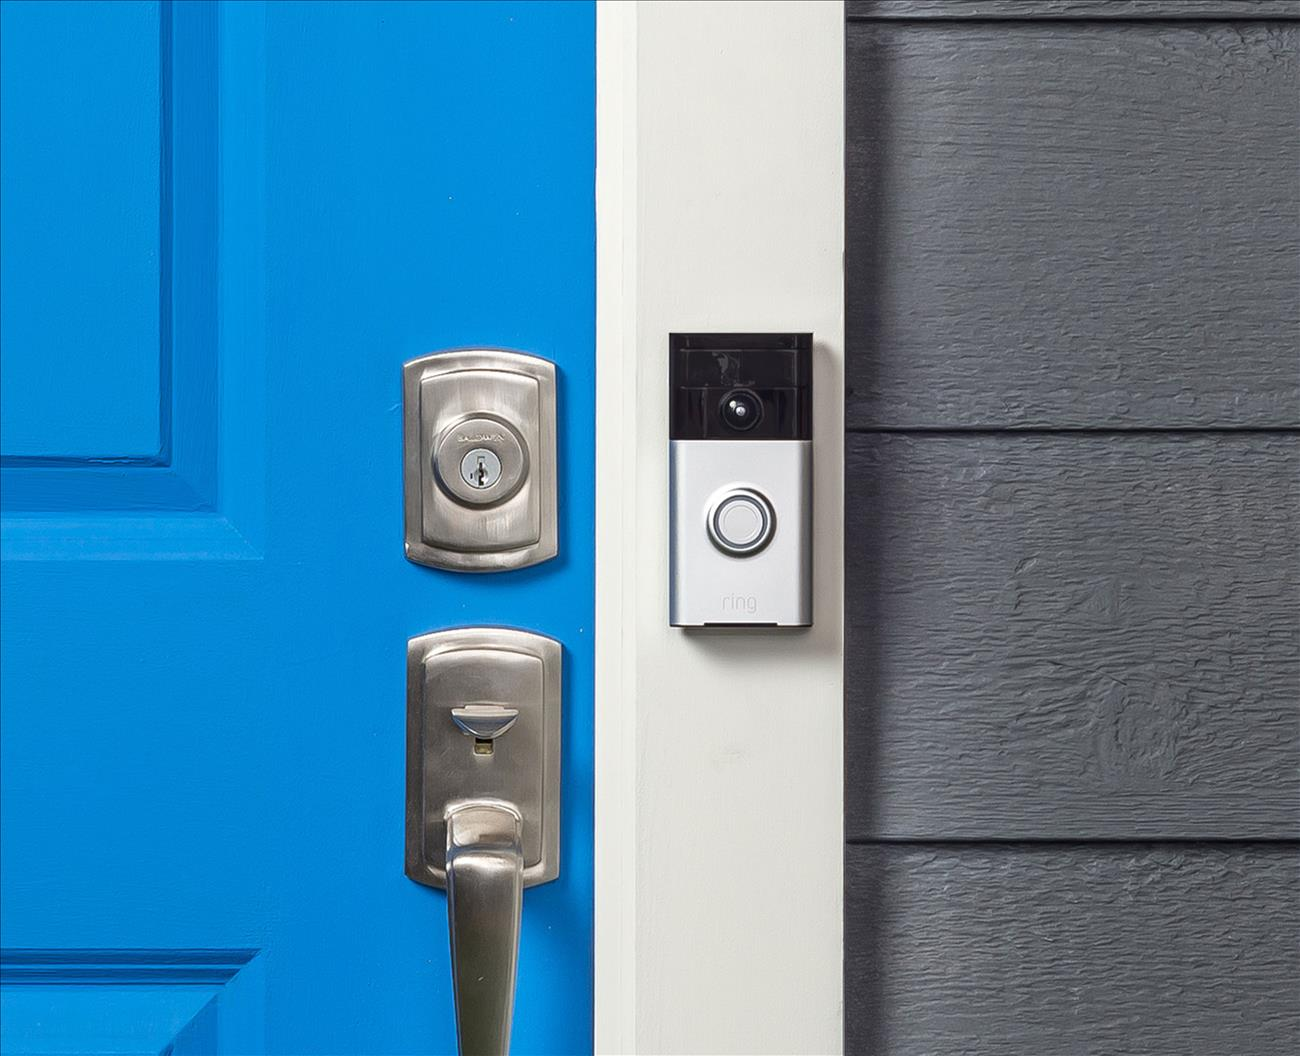 ring video home security